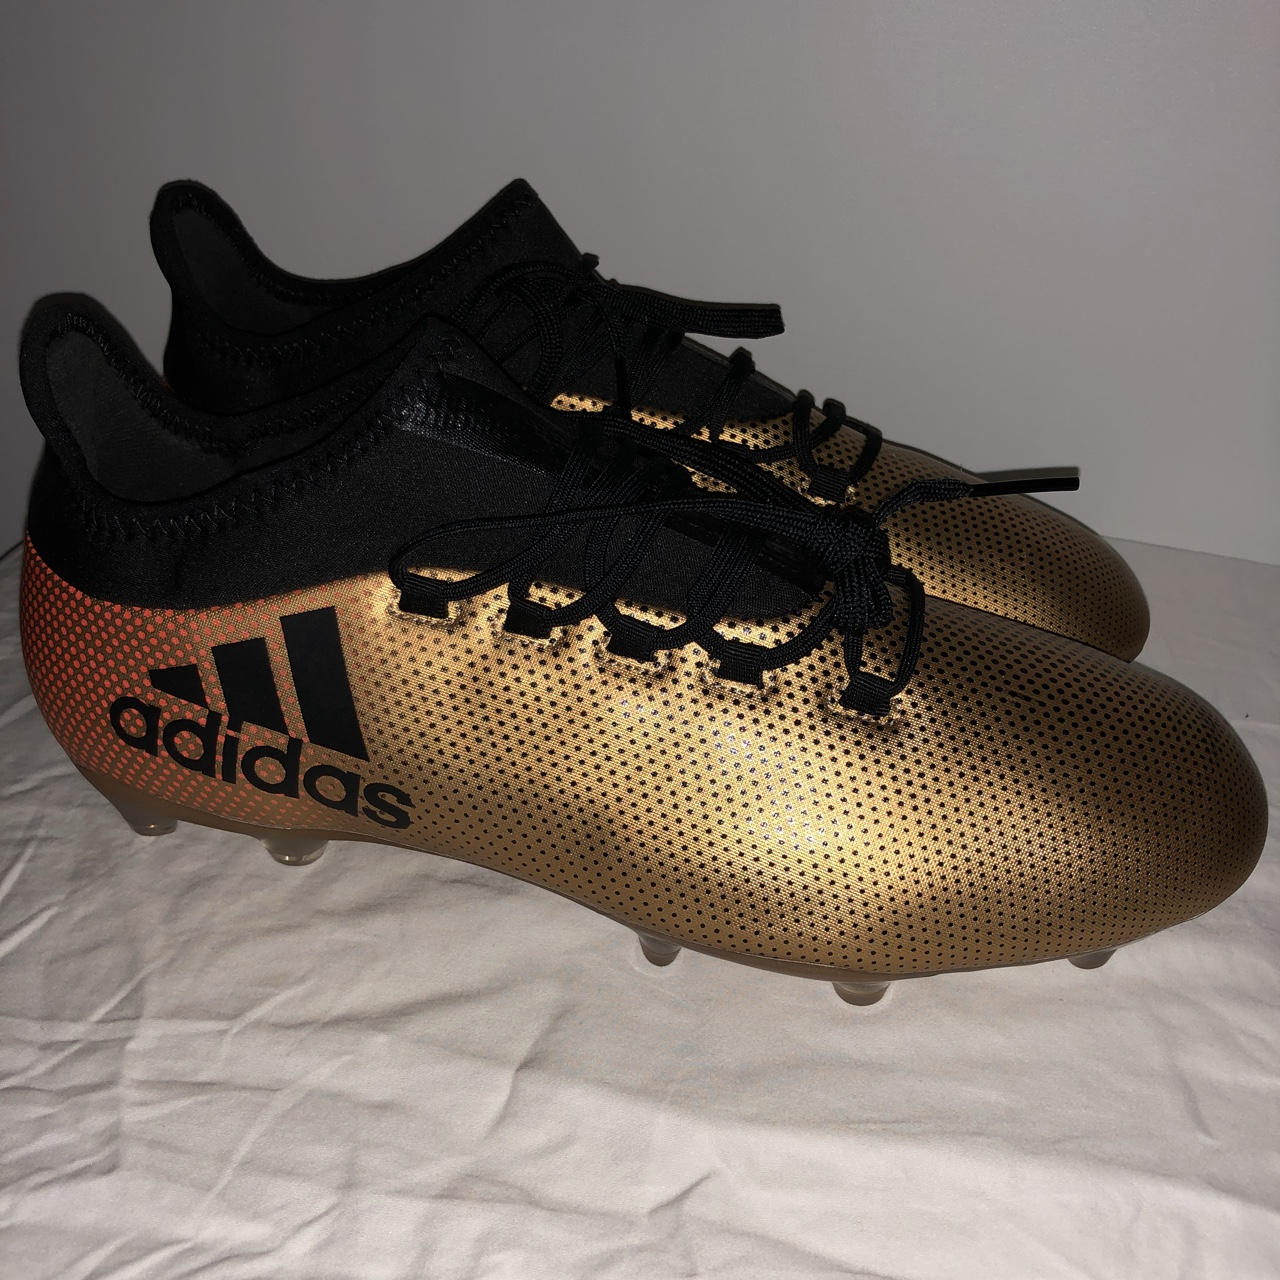 sports shoes 8fc53 463d2 Adidas X 17.2s men's soccer cleats BRAND NEW! Tag ...